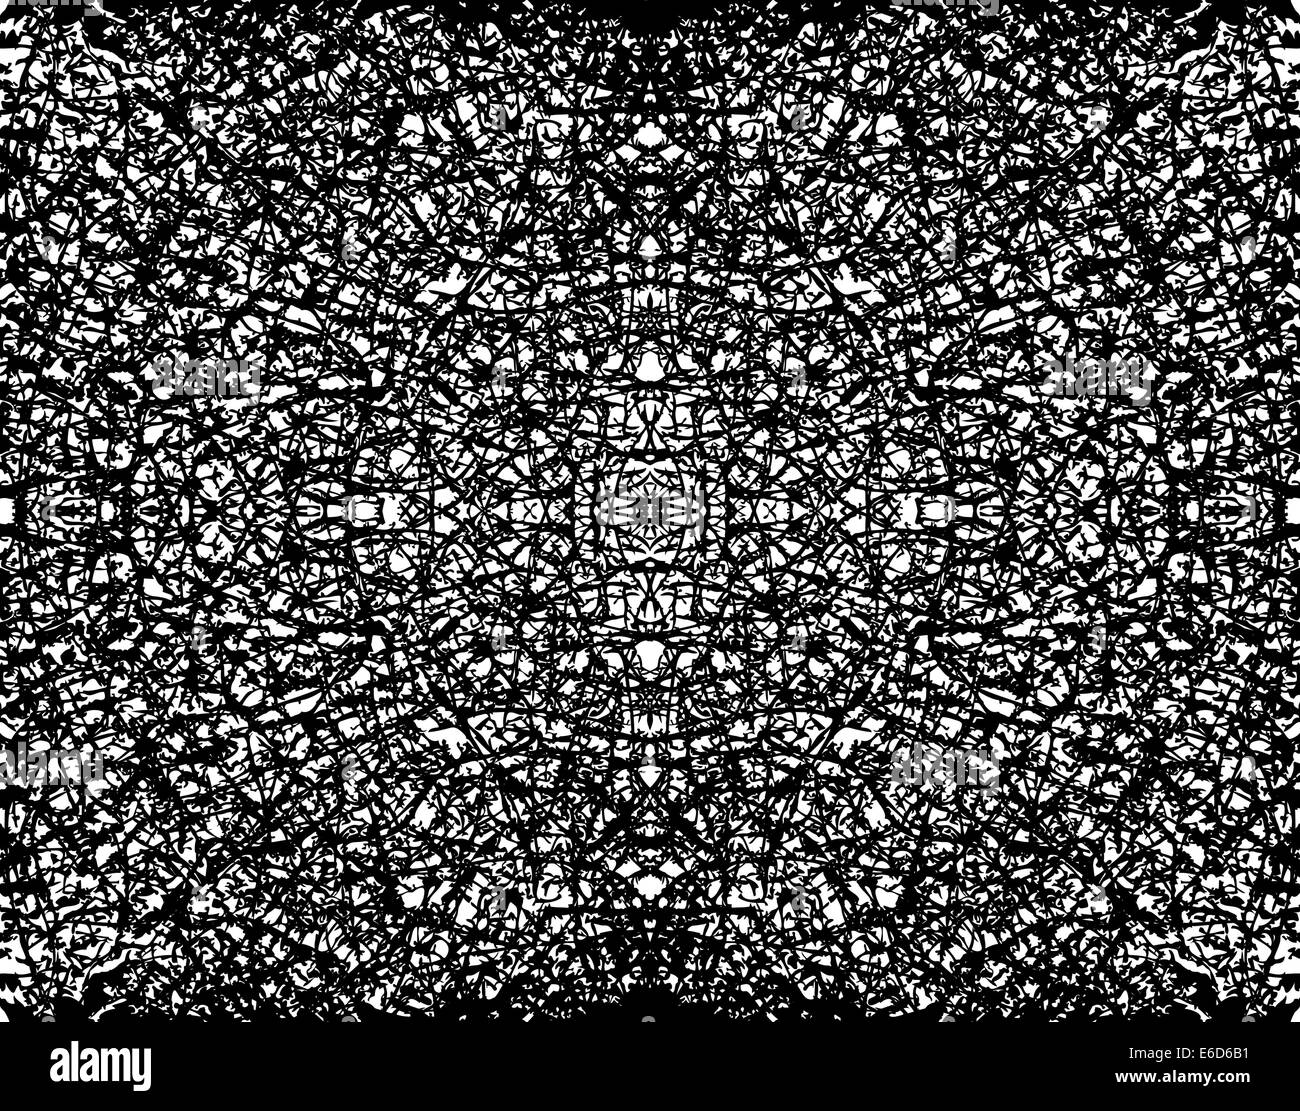 Abstract editable vector illustration of a symmetrical grunge pattern - Stock Image